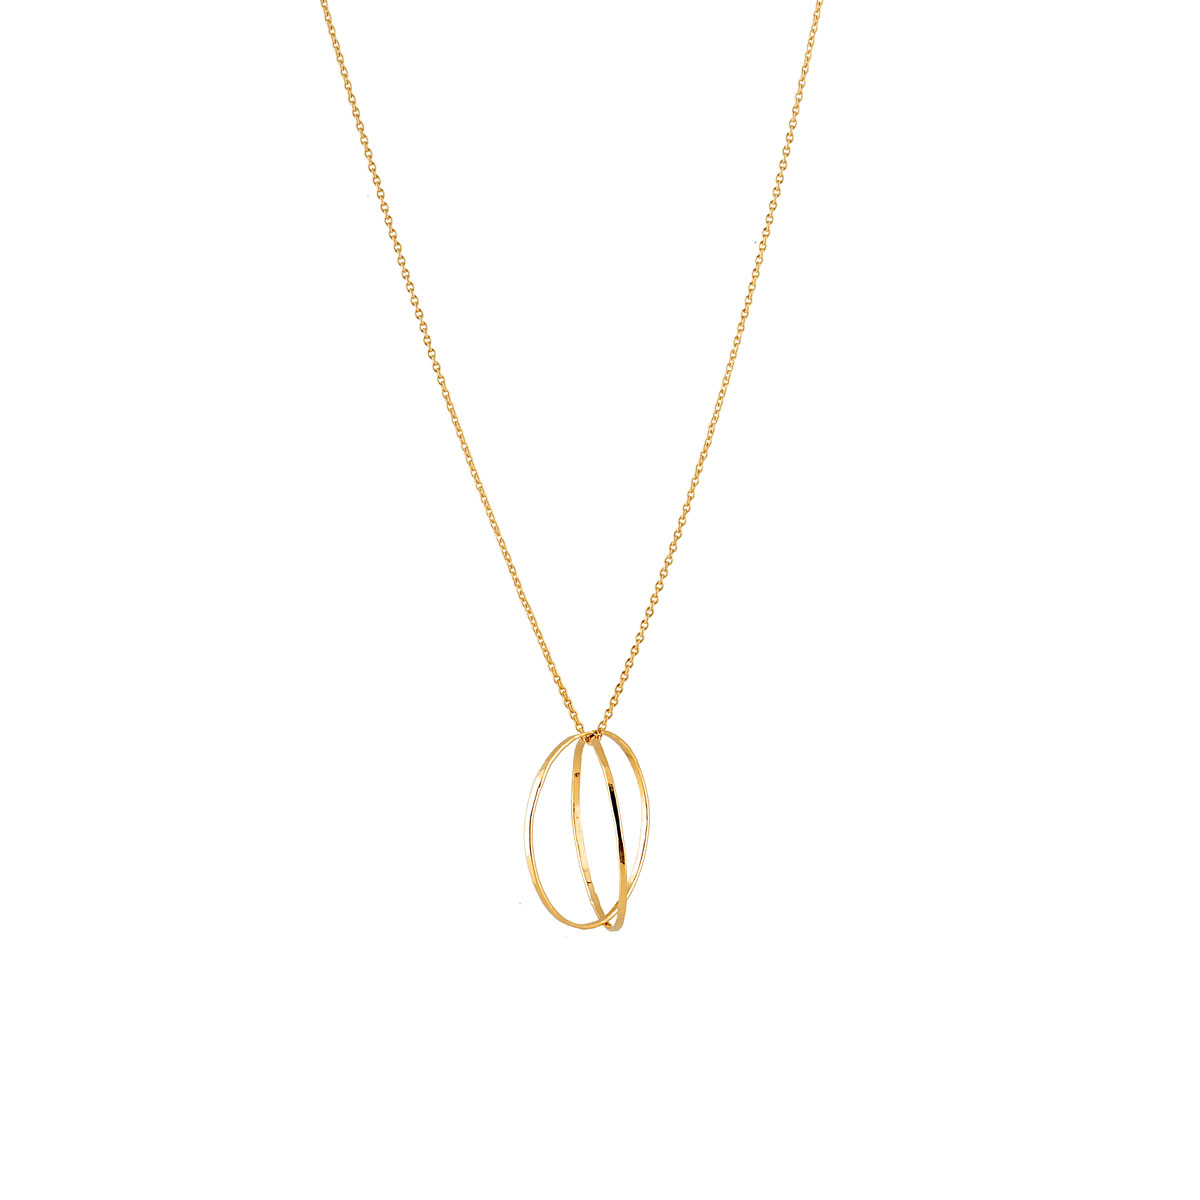 Collier WELT gold plated 925 silver